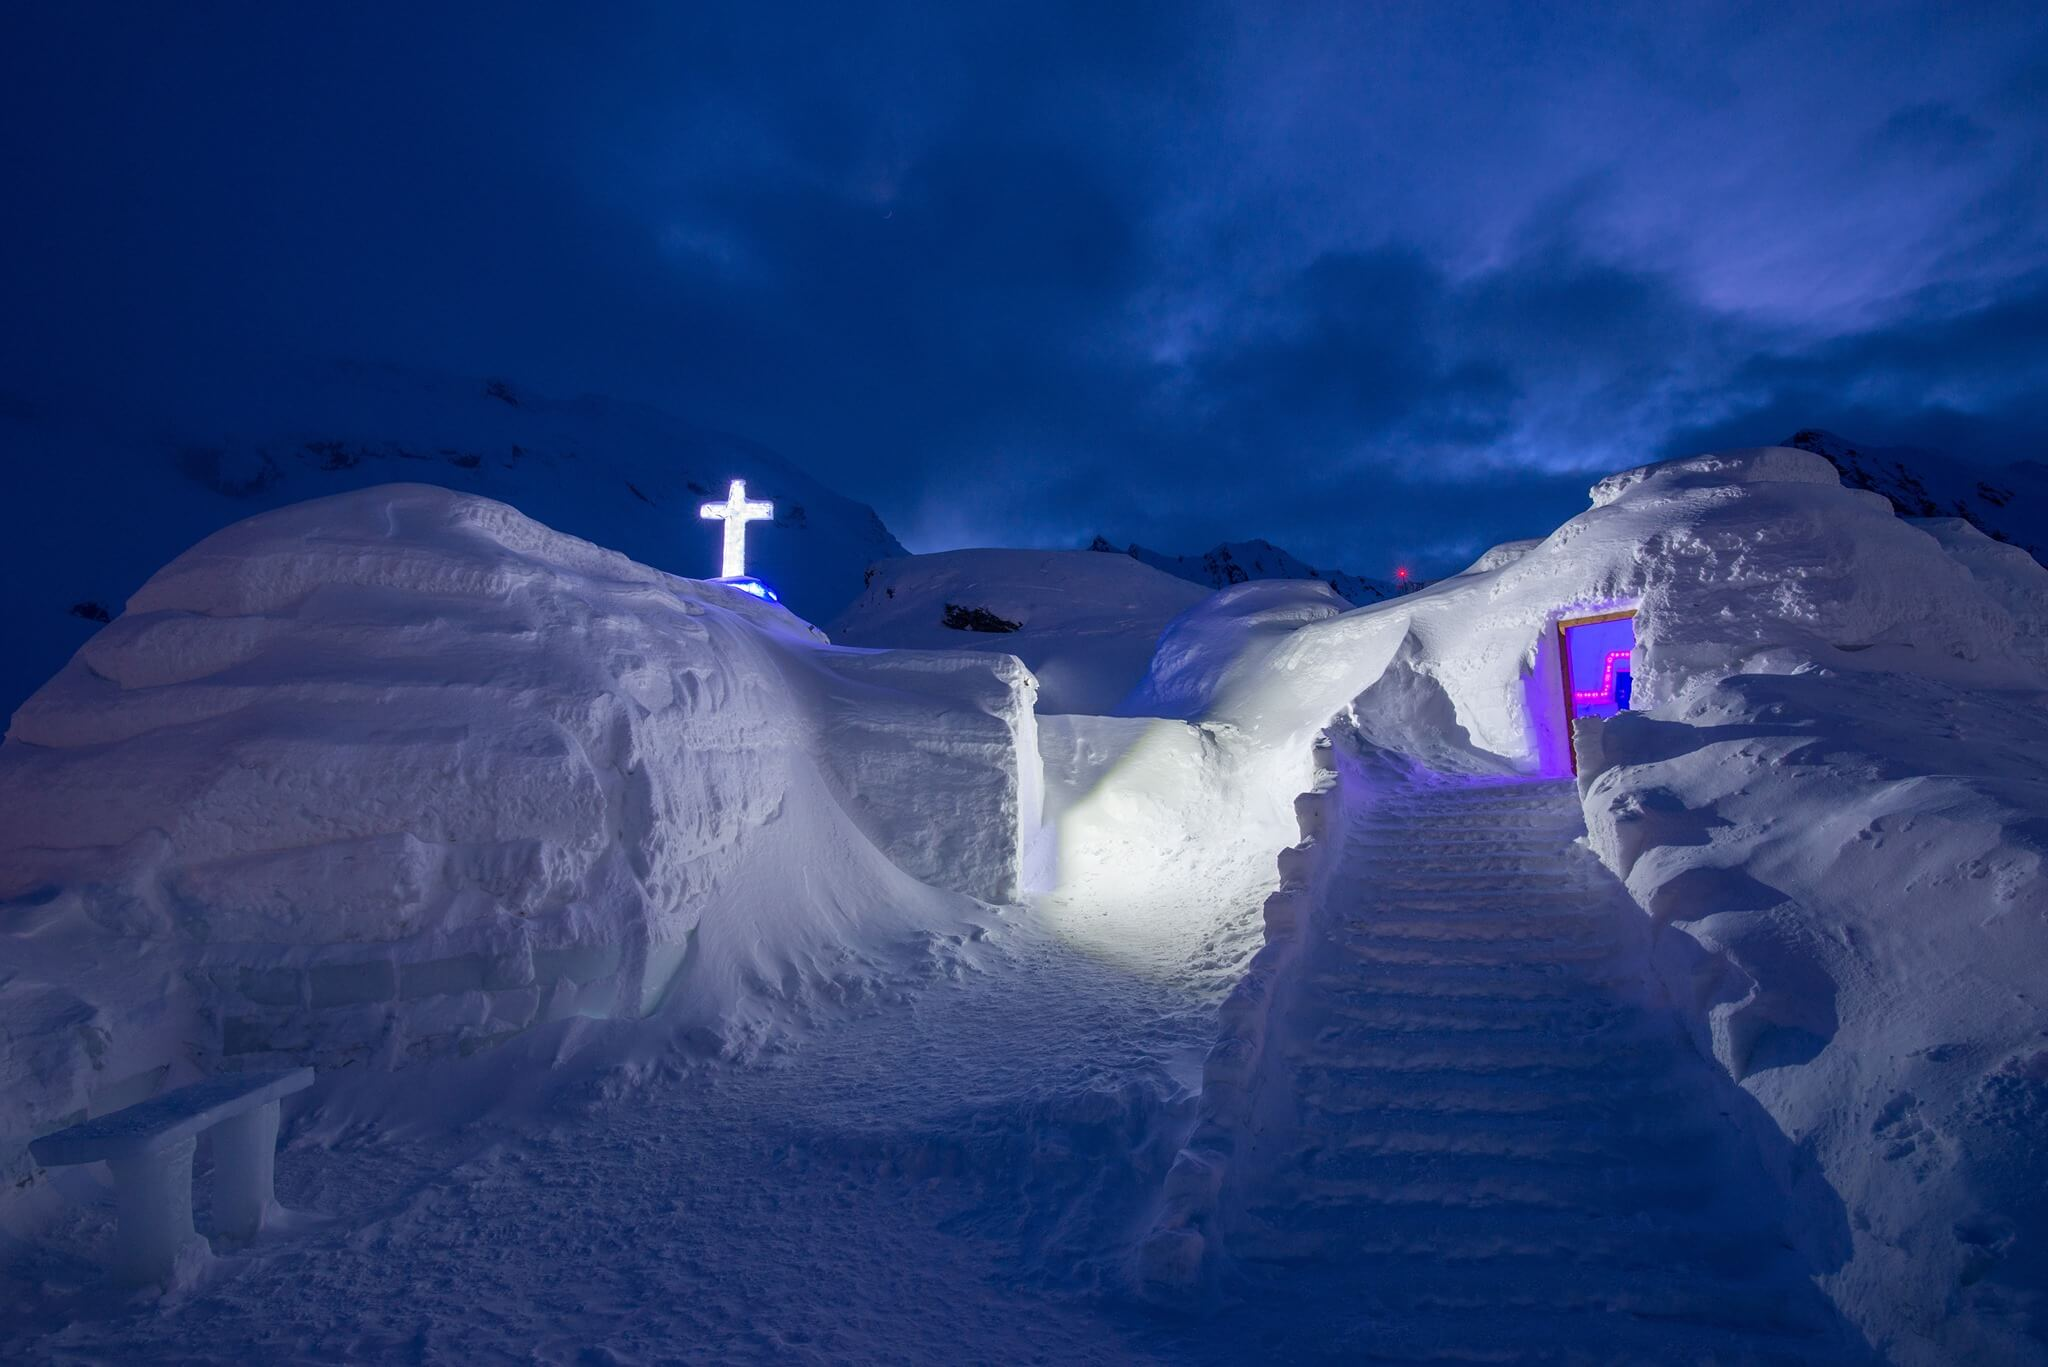 Entrance in the ice hotel from Romania